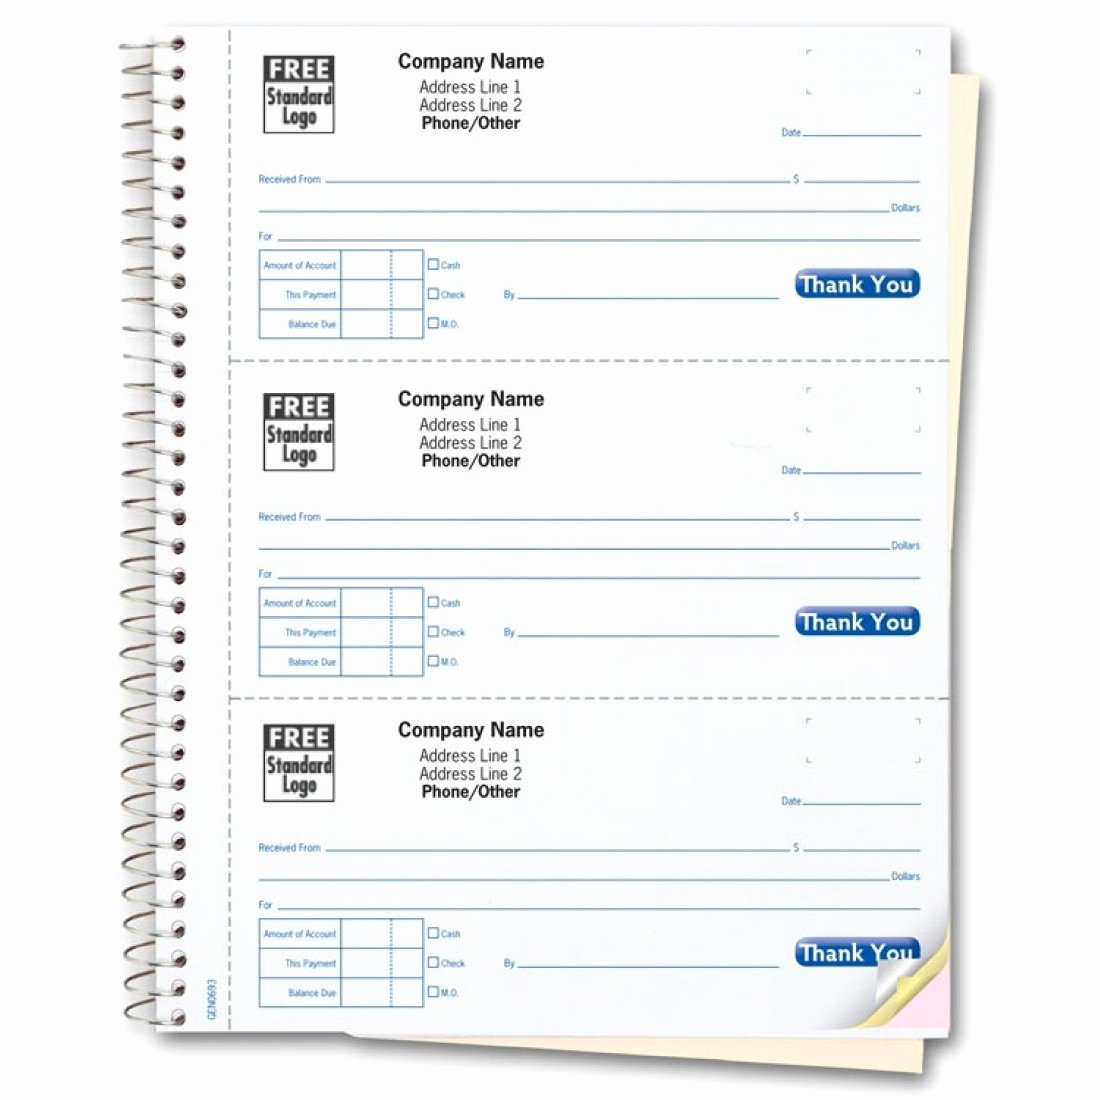 Where to Buy Receipt Books New 3 to A Page Cash Receipt Books Gen0693 at Print Ez